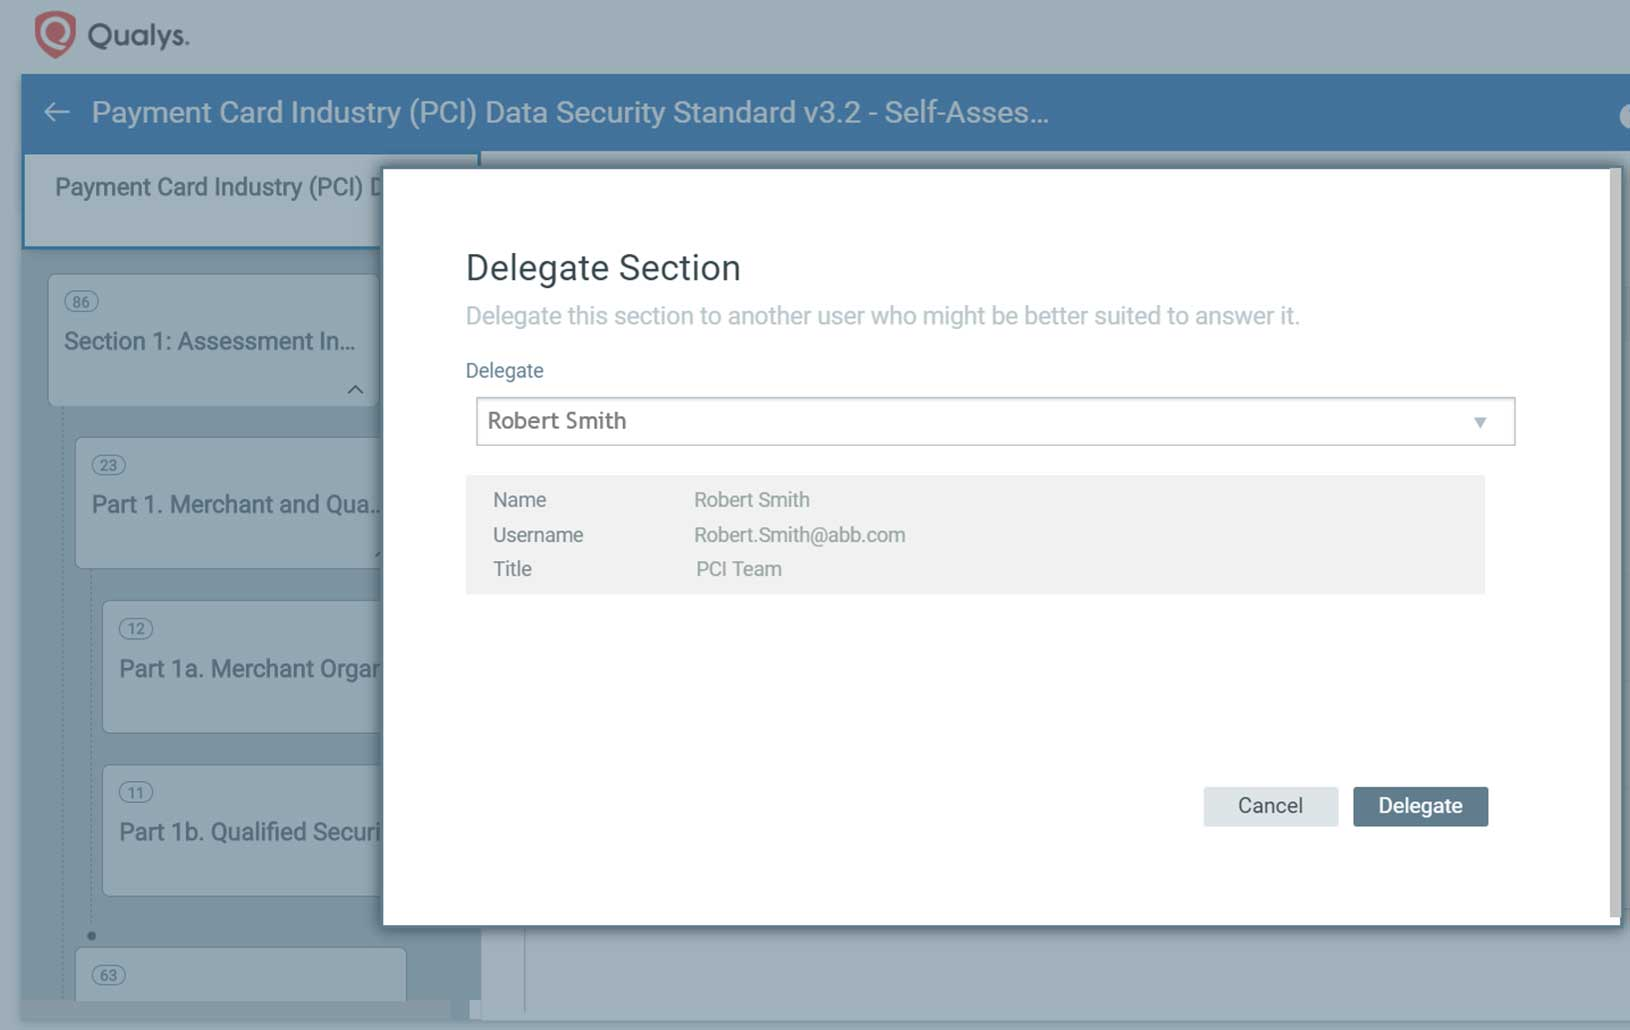 Security Assessment Questionnaire | Qualys, Inc